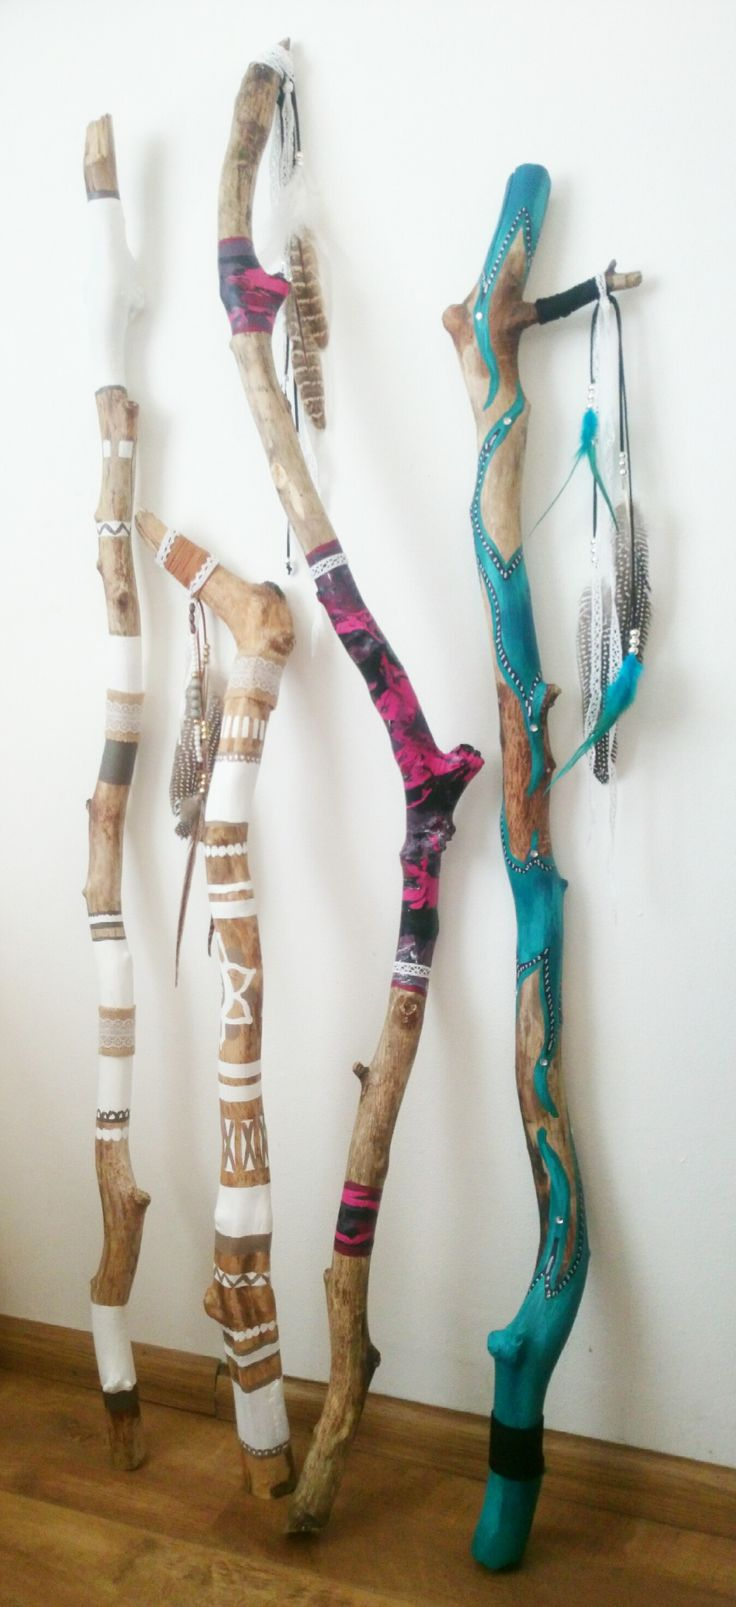 wallsticks, beschilderde stokken, painted sticks by www.creativeartbyjessica.nl #wallsticks #ibizaflags #walkingstick #talkingstick #walldecoration #muurdecoratie #beschilderdestokken